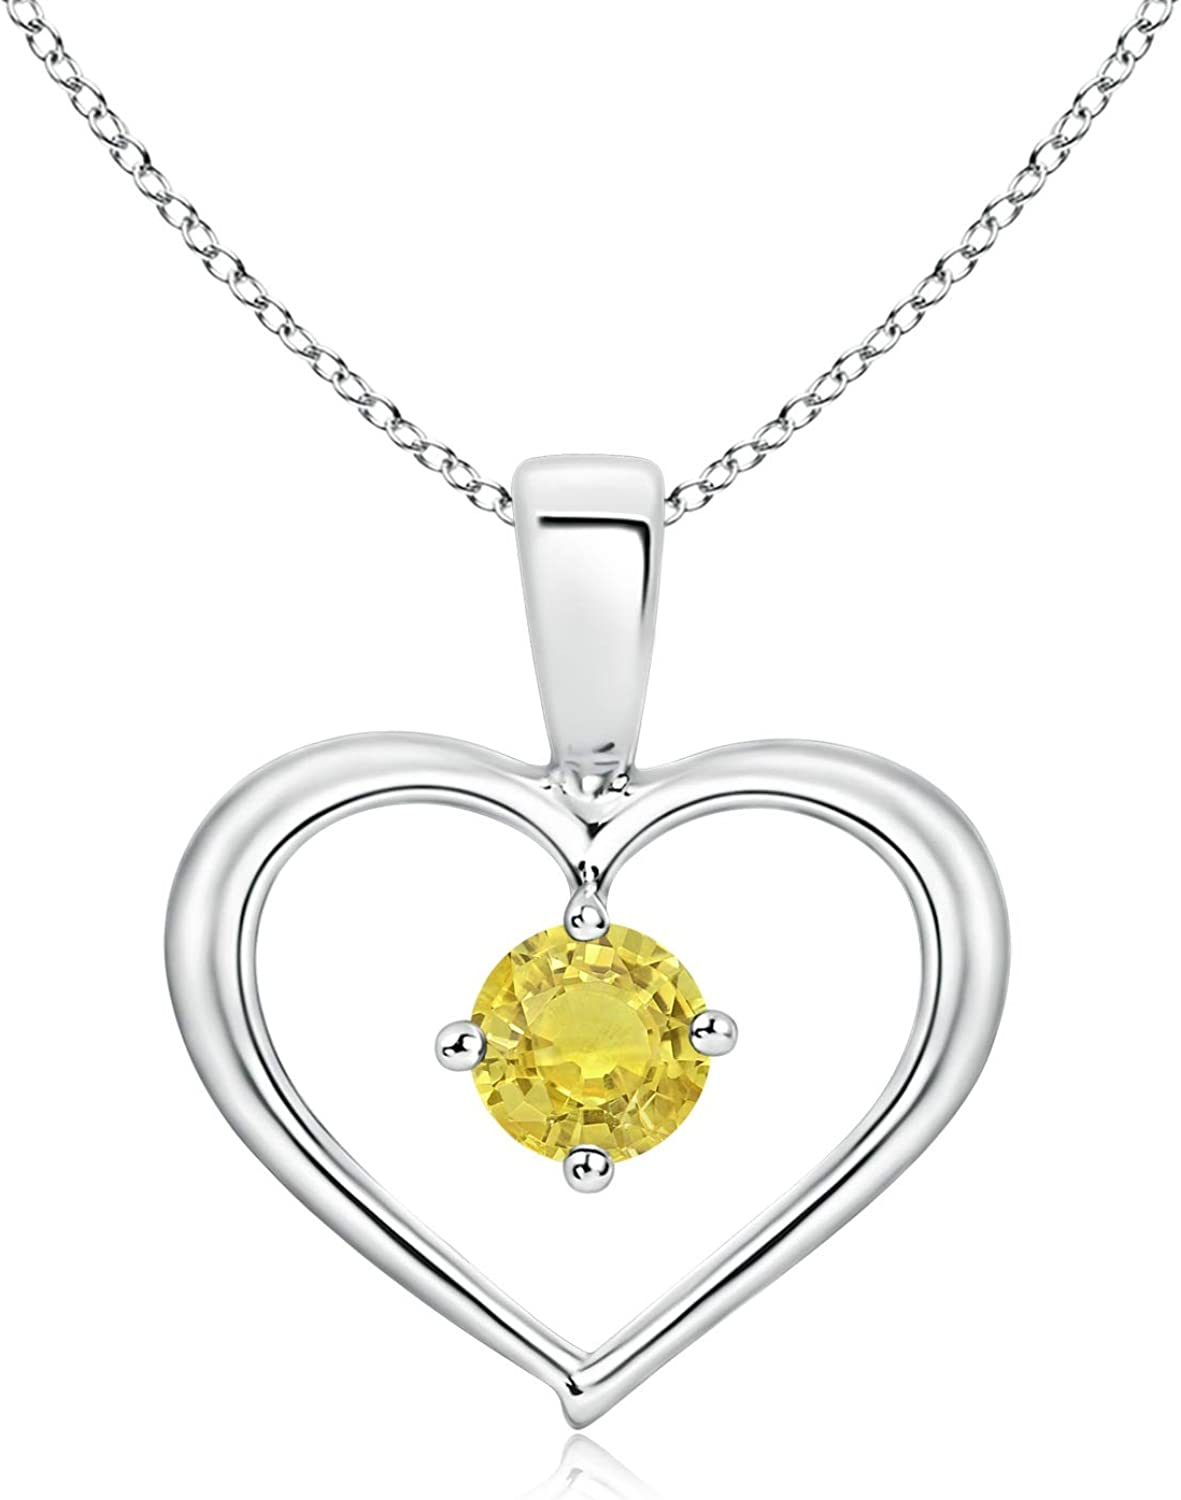 Solitaire Round Max 50% OFF Yellow wholesale Sapphire Open 4mm S Heart Pendant